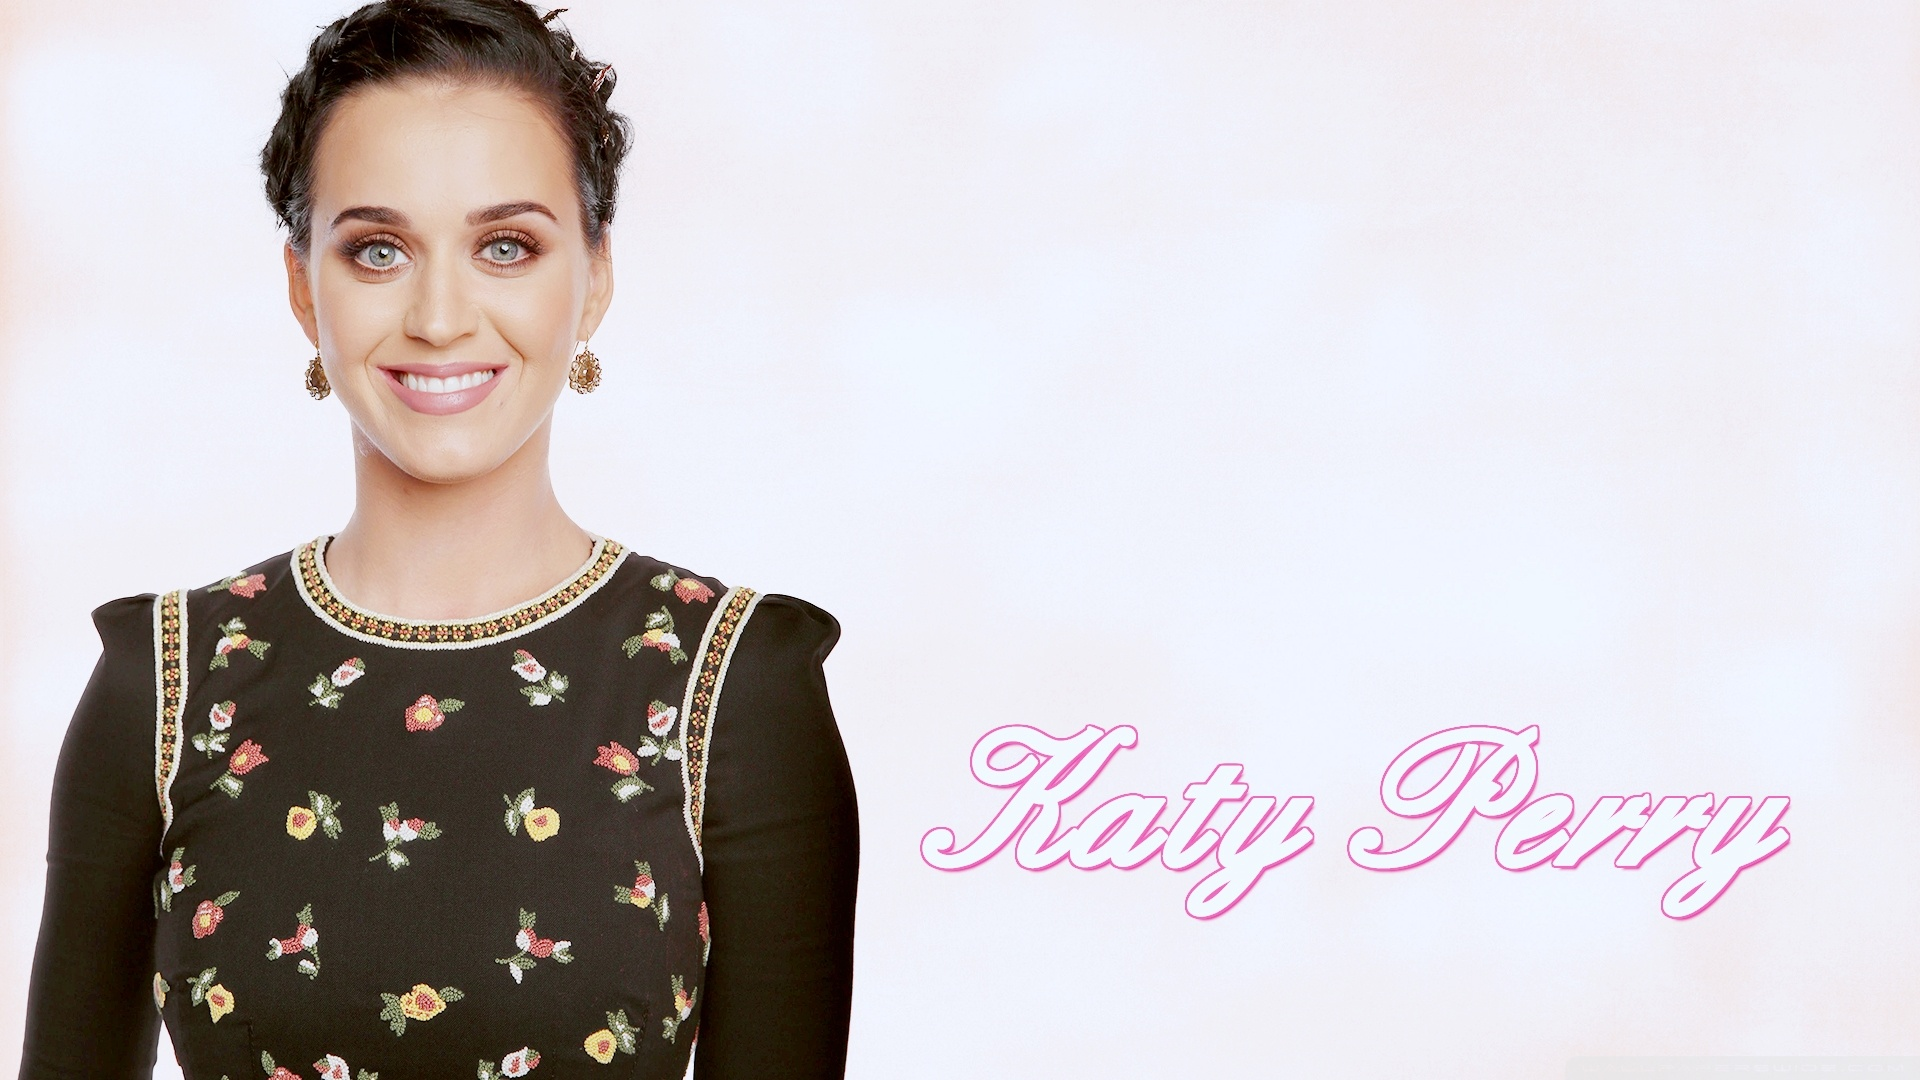 Katy Perry Wallpaper 27